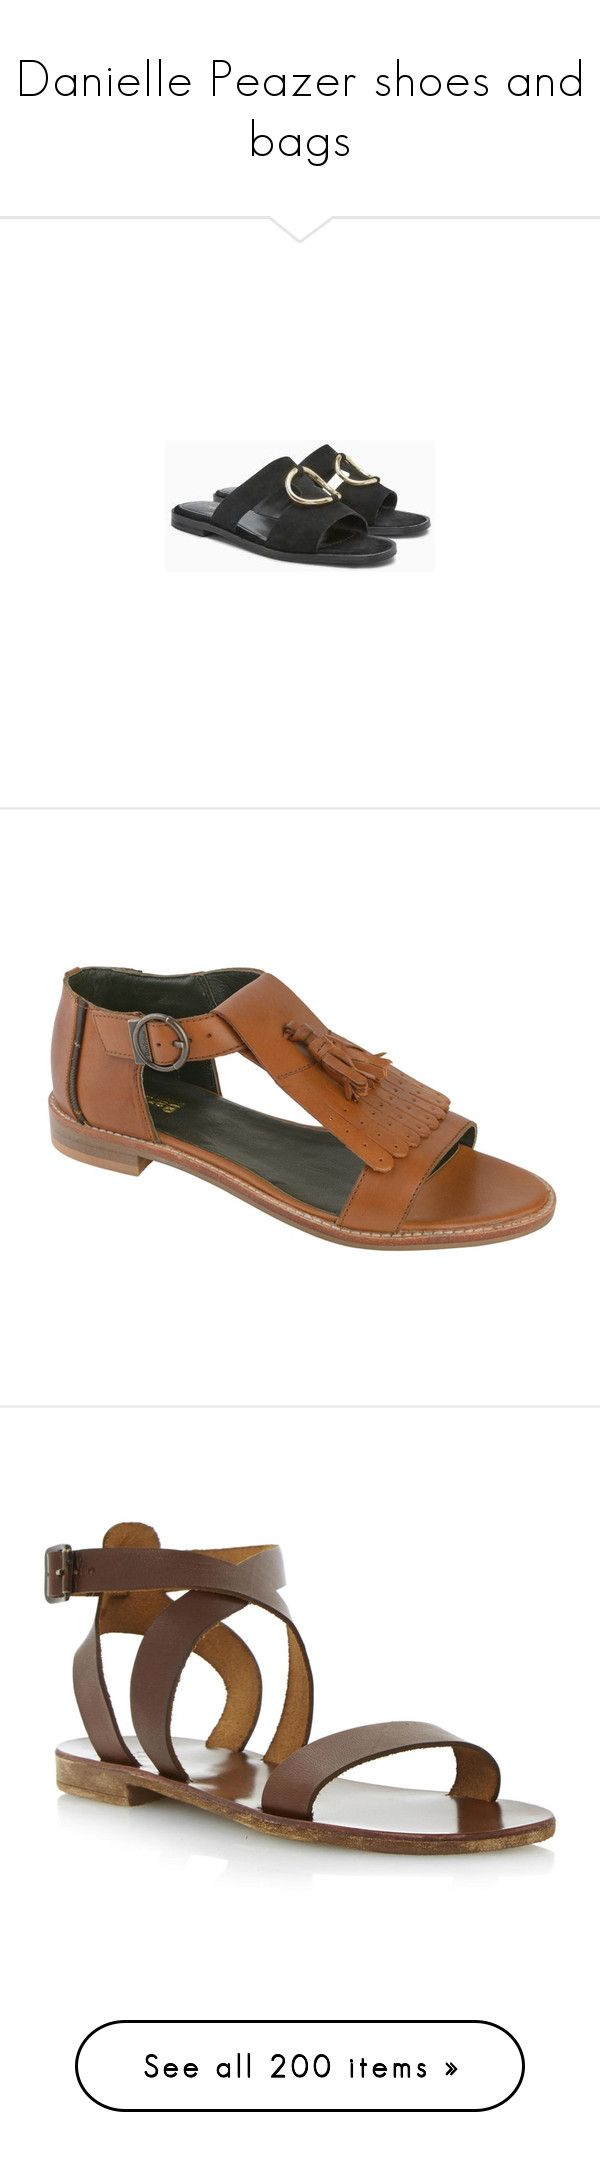 """""""Danielle Peazer shoes and bags"""" by marilia13 ❤ liked on Polyvore featuring shoes, sandals, black leather shoes, circle shoes, black leather mules, leather footwear, black mules, tan flat shoes, tan flat sandals and tan sandals"""